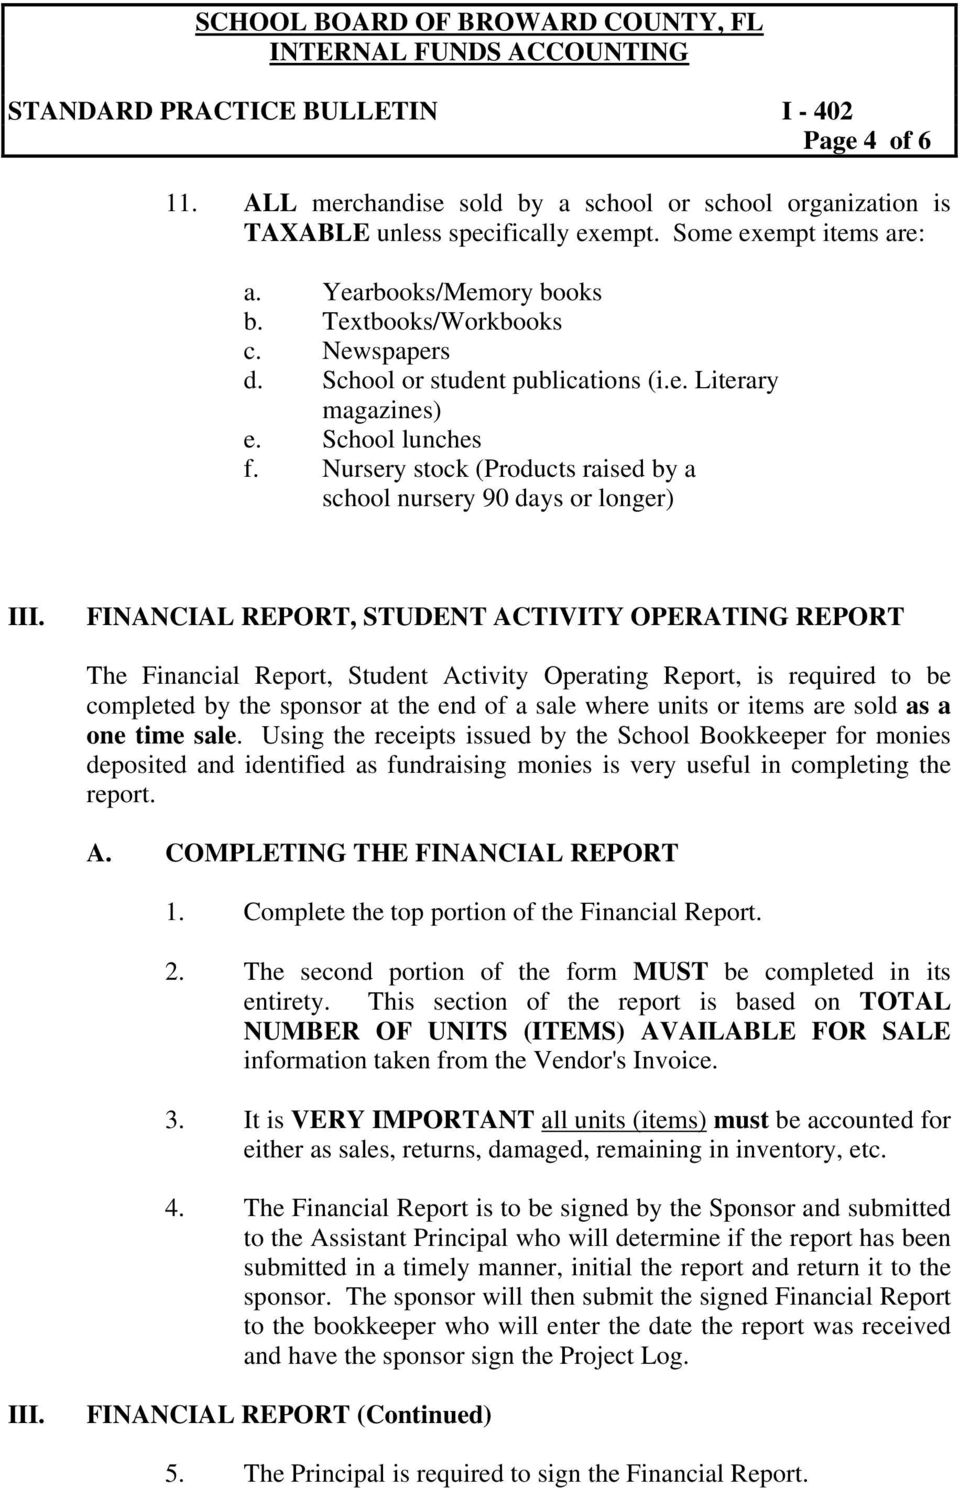 FINANCIAL REPORT, STUDENT ACTIVITY OPERATING REPORT The Financial Report, Student Activity Operating Report, is required to be completed by the sponsor at the end of a sale where units or items are